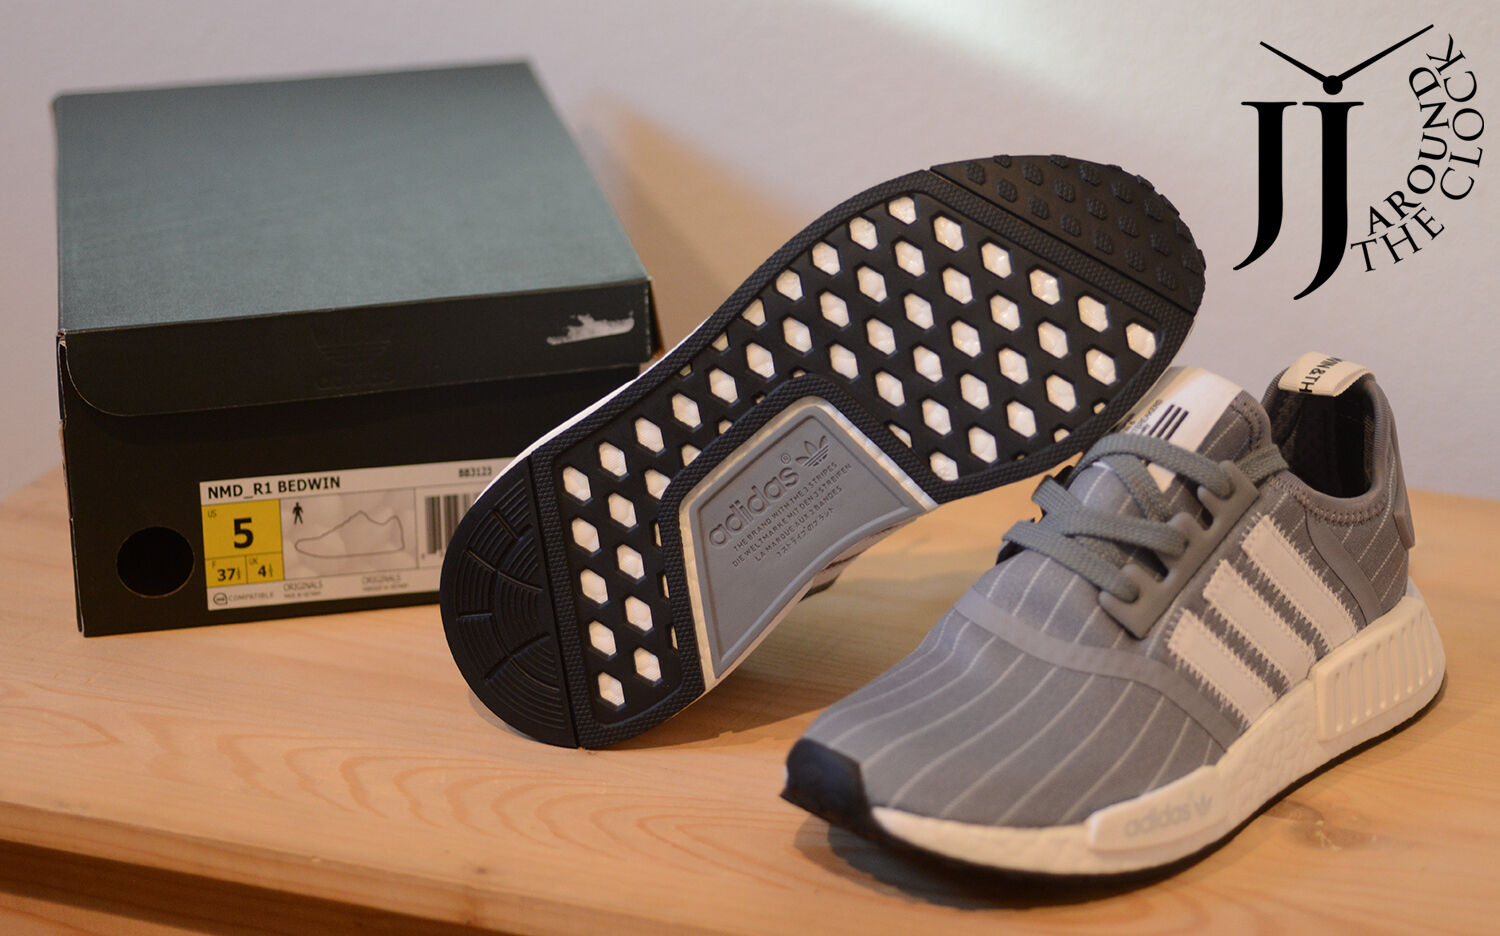 c6b6c53db ... NEW ADIDAS NMD NMD NMD R1 BEDWIN   THE HEARTBREAKERS BB3123 GREY 5.0 US  3f44a9 ...